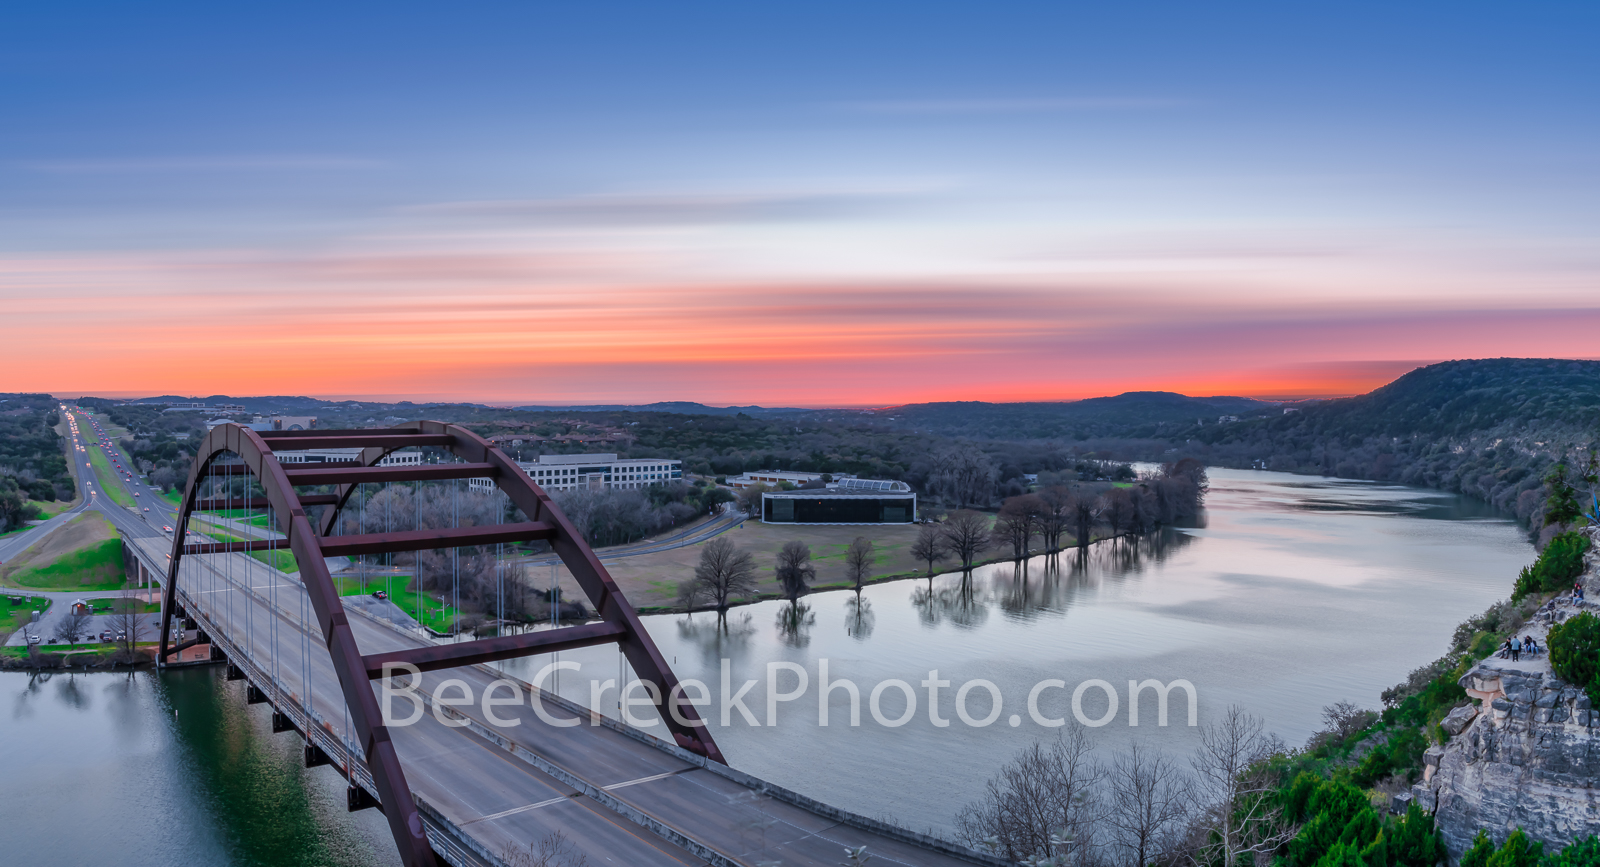 Austin 360 bridge, pennybacker bridge, Austin, Lake Austin, scenic, sunset, landscape, landscapes, sunset colors, scenery, clouds, images of austin, texas hill country, texas scenery,, photo